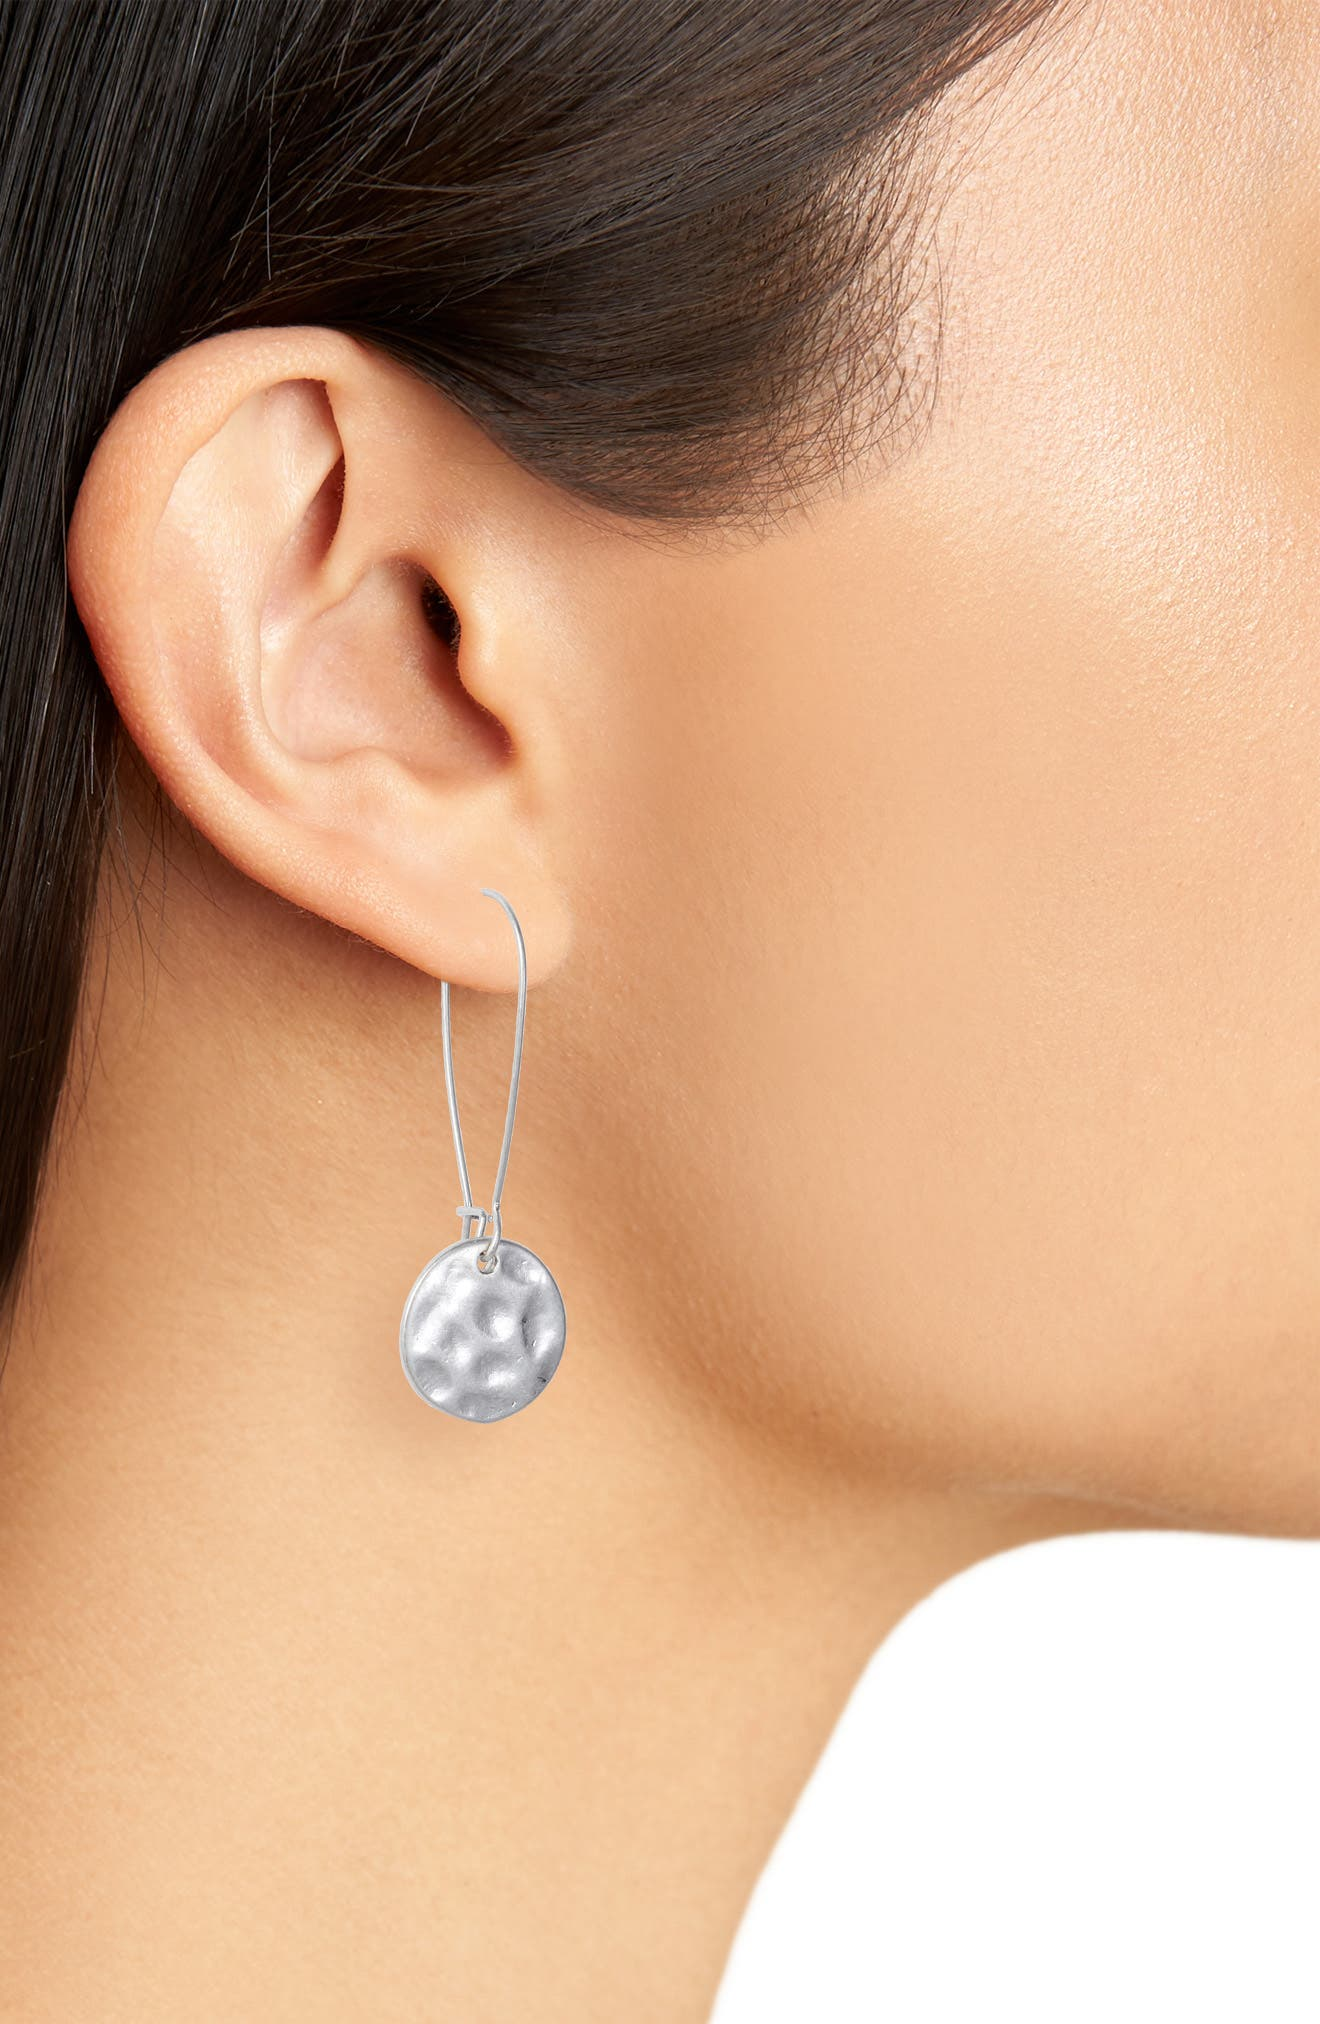 Organic Disc Threaded Drop Earrings,                             Alternate thumbnail 2, color,                             040